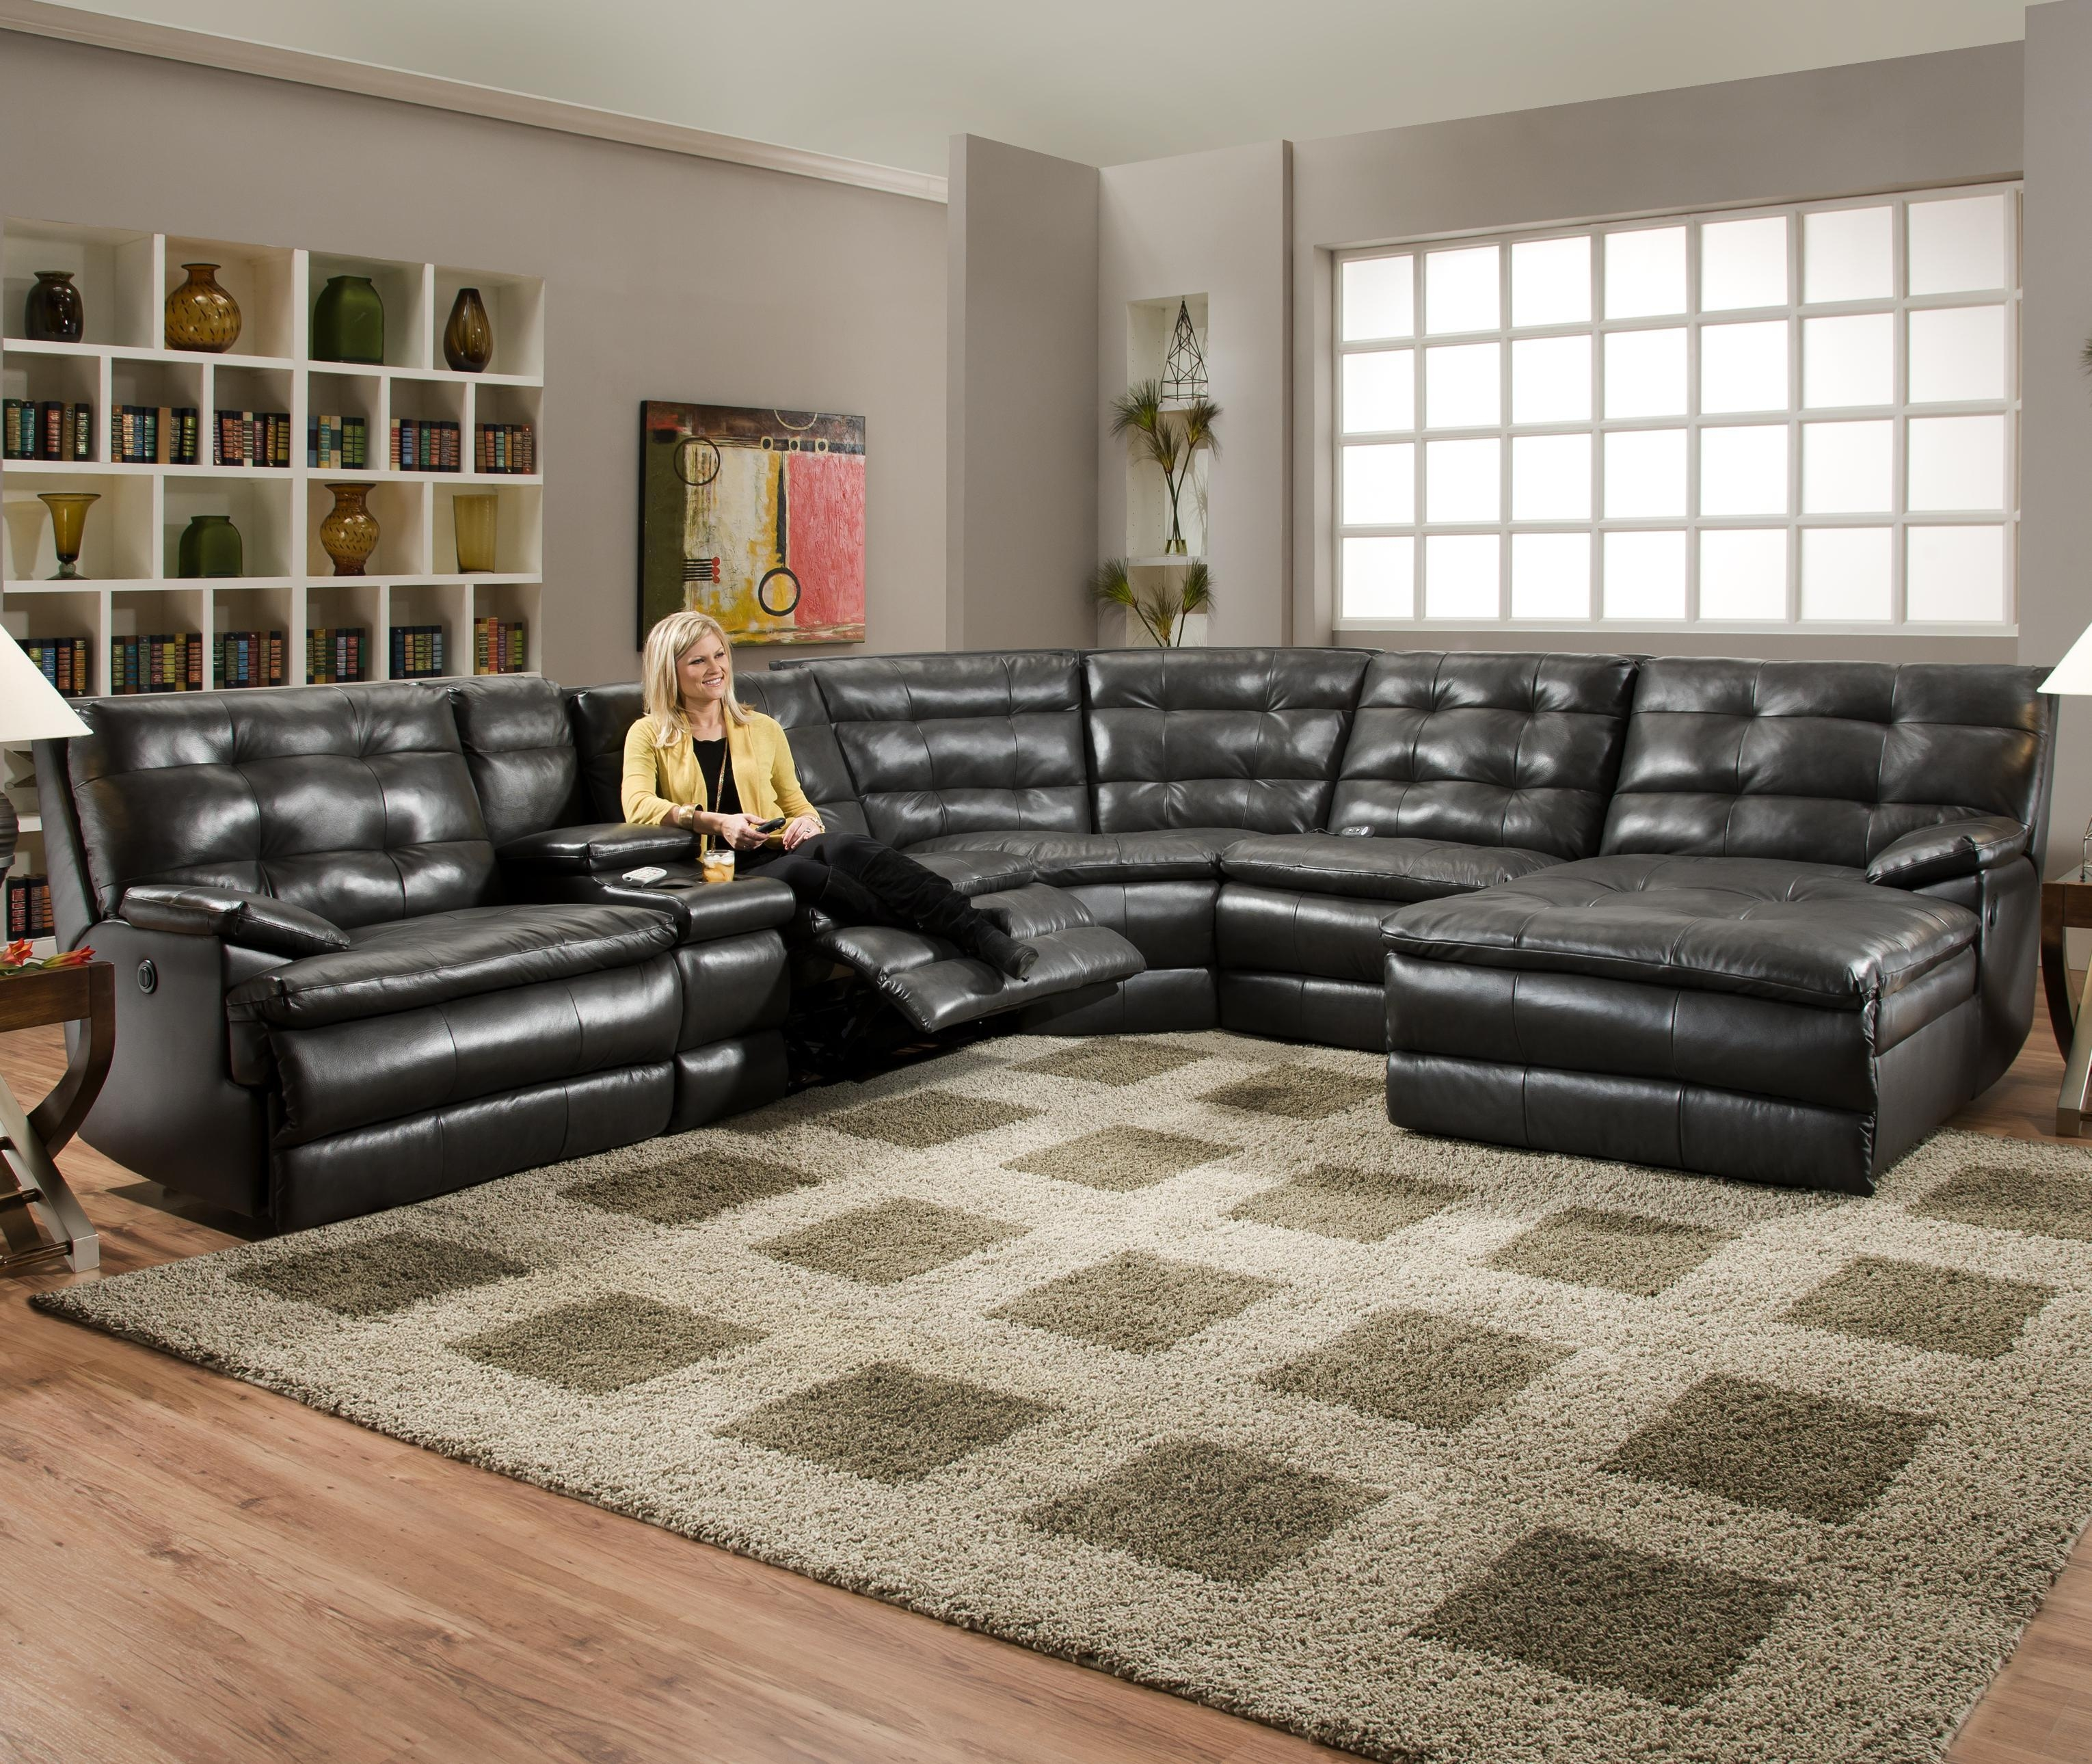 Featured Image of Motion Sectional Sofas